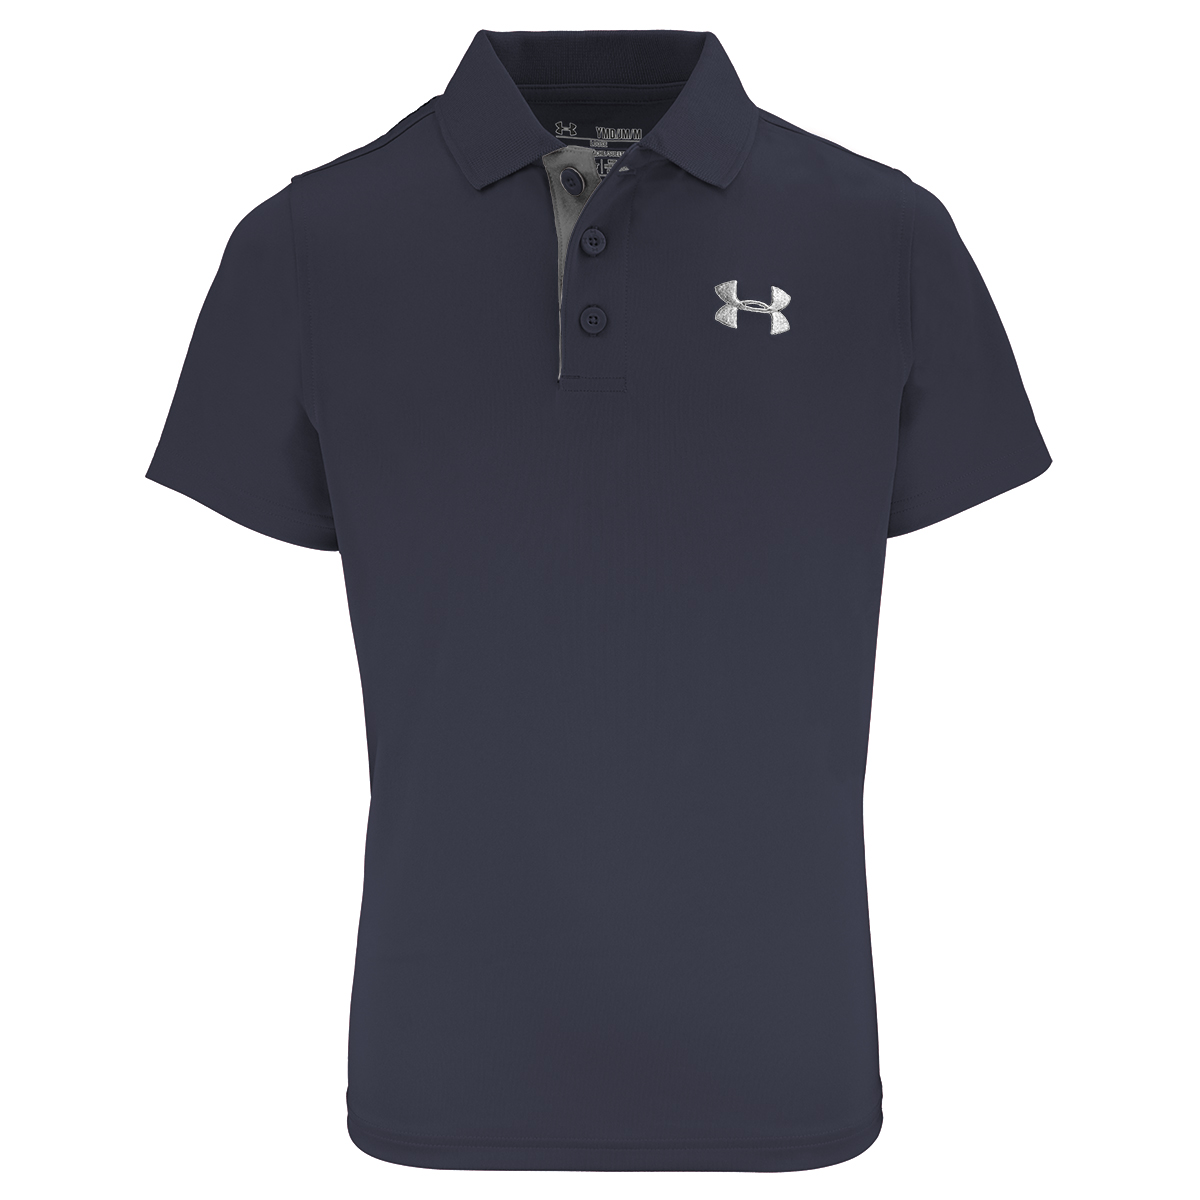 Under-Armour-Boys-039-Match-Play-Polo